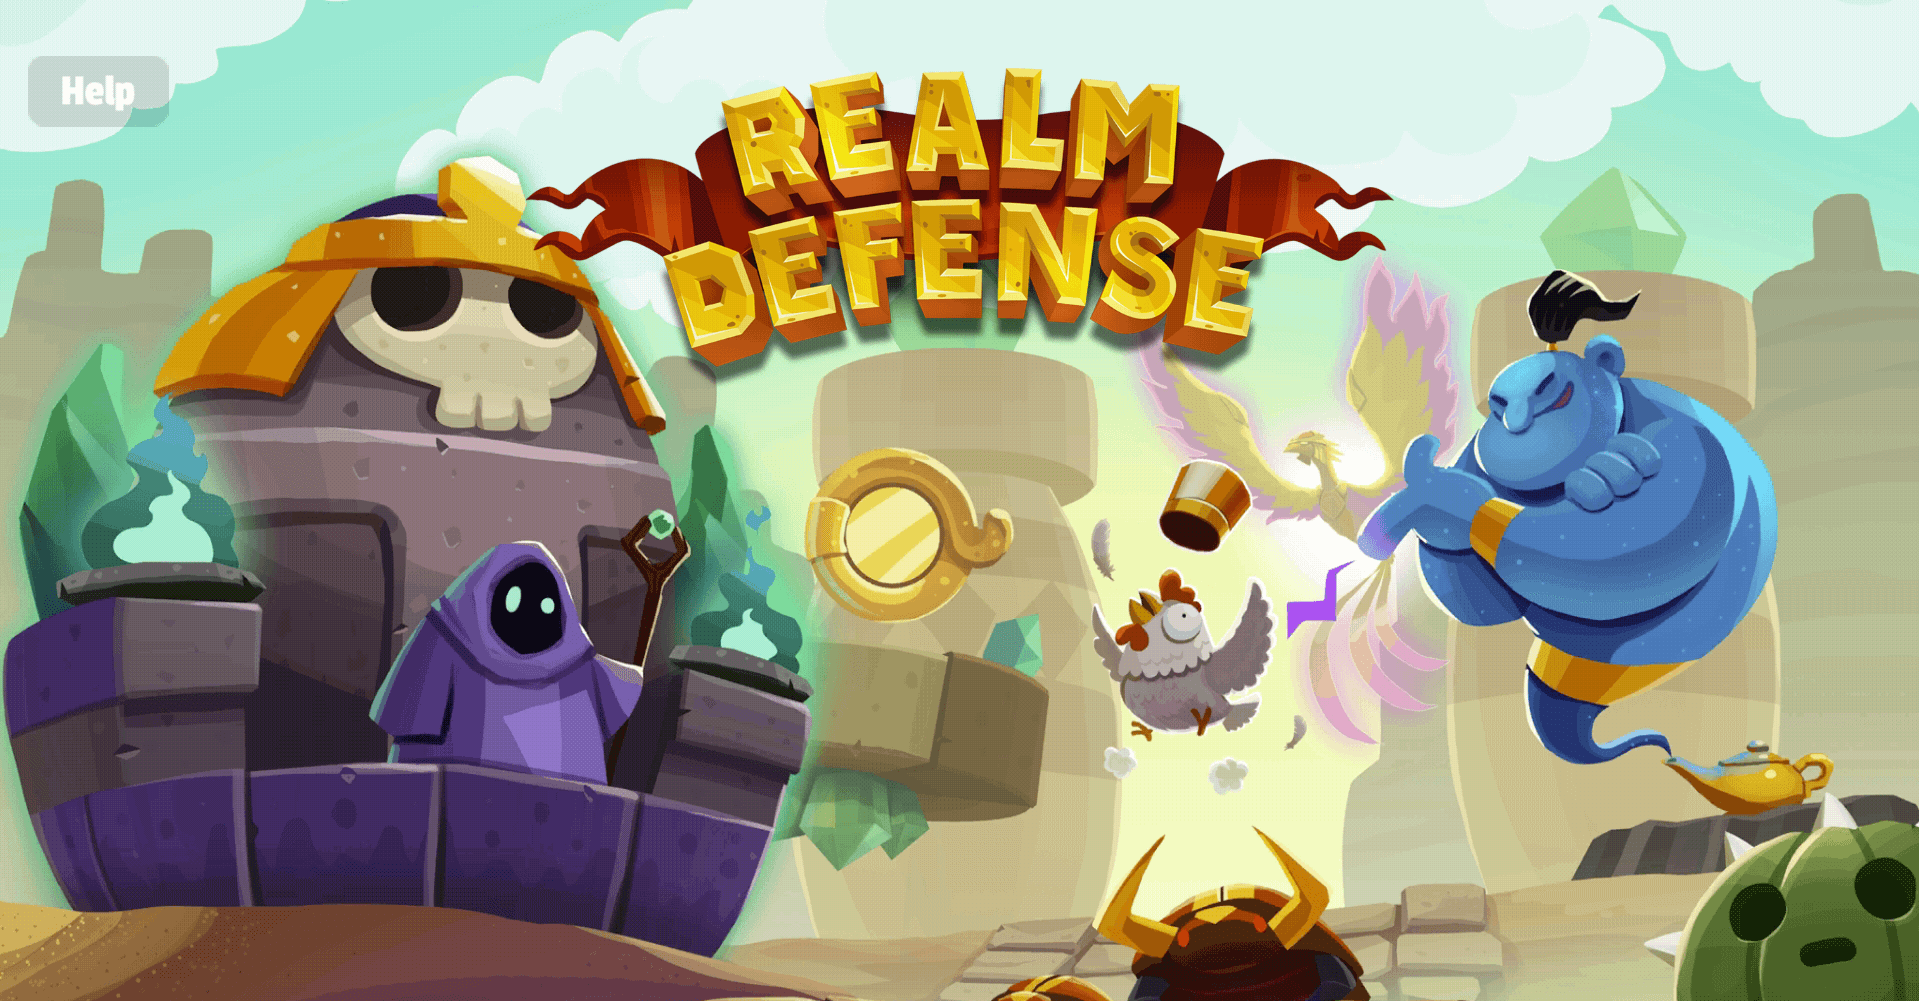 RealmDefence(レルムディフェンス)